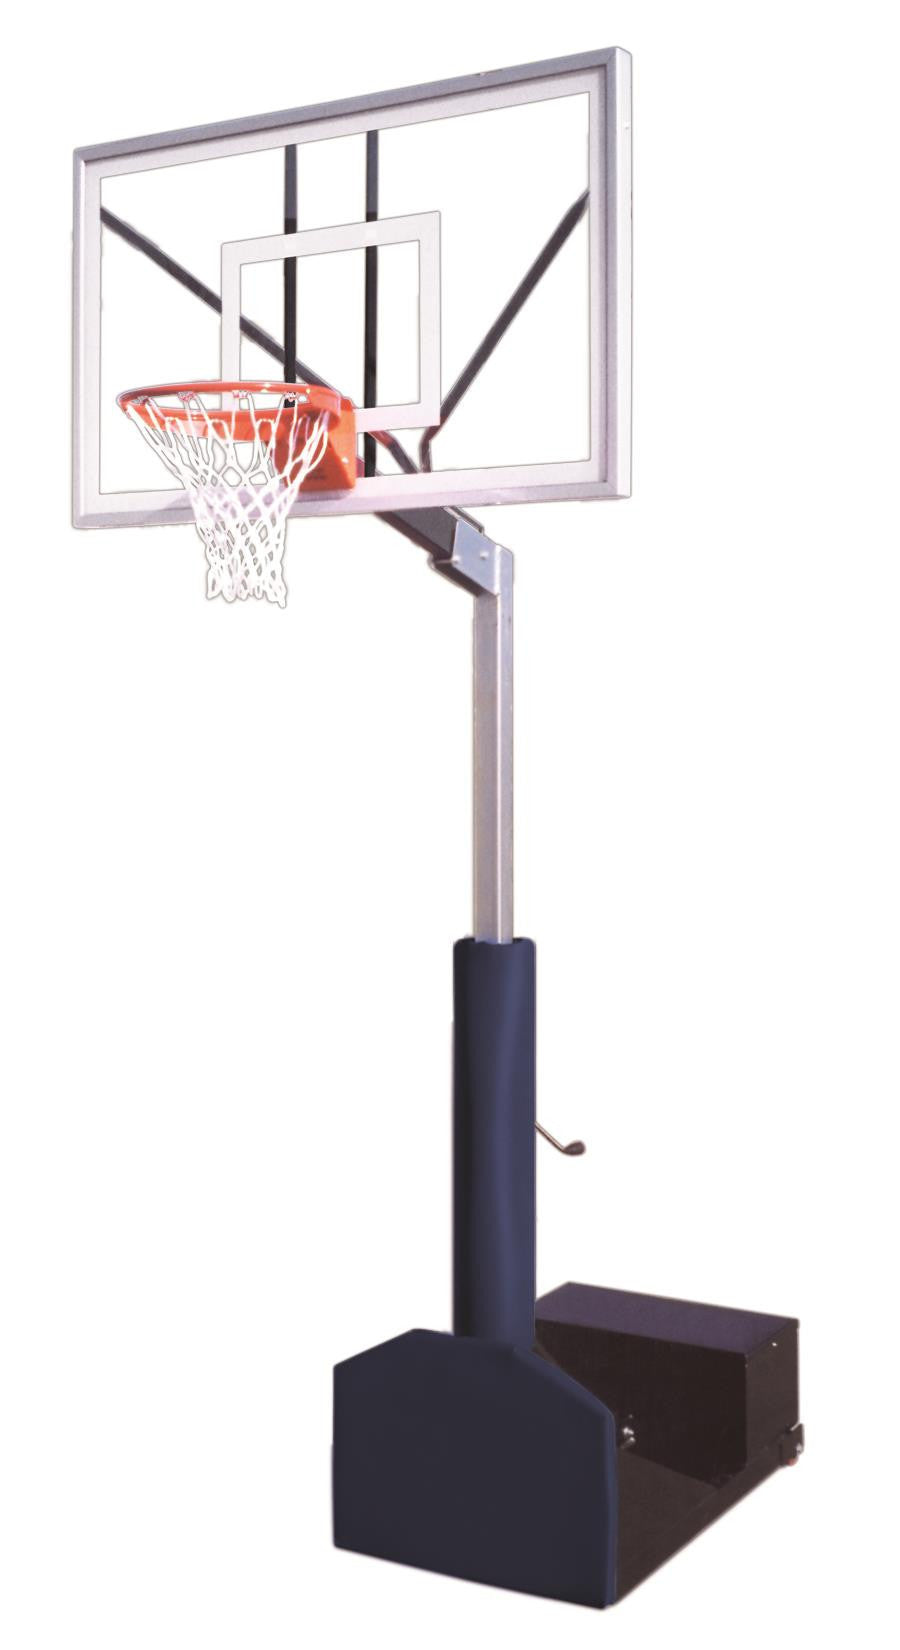 First Team Rampage Nitro Adjustable Portable Basketball Hoop 60 inch Tempered Glass